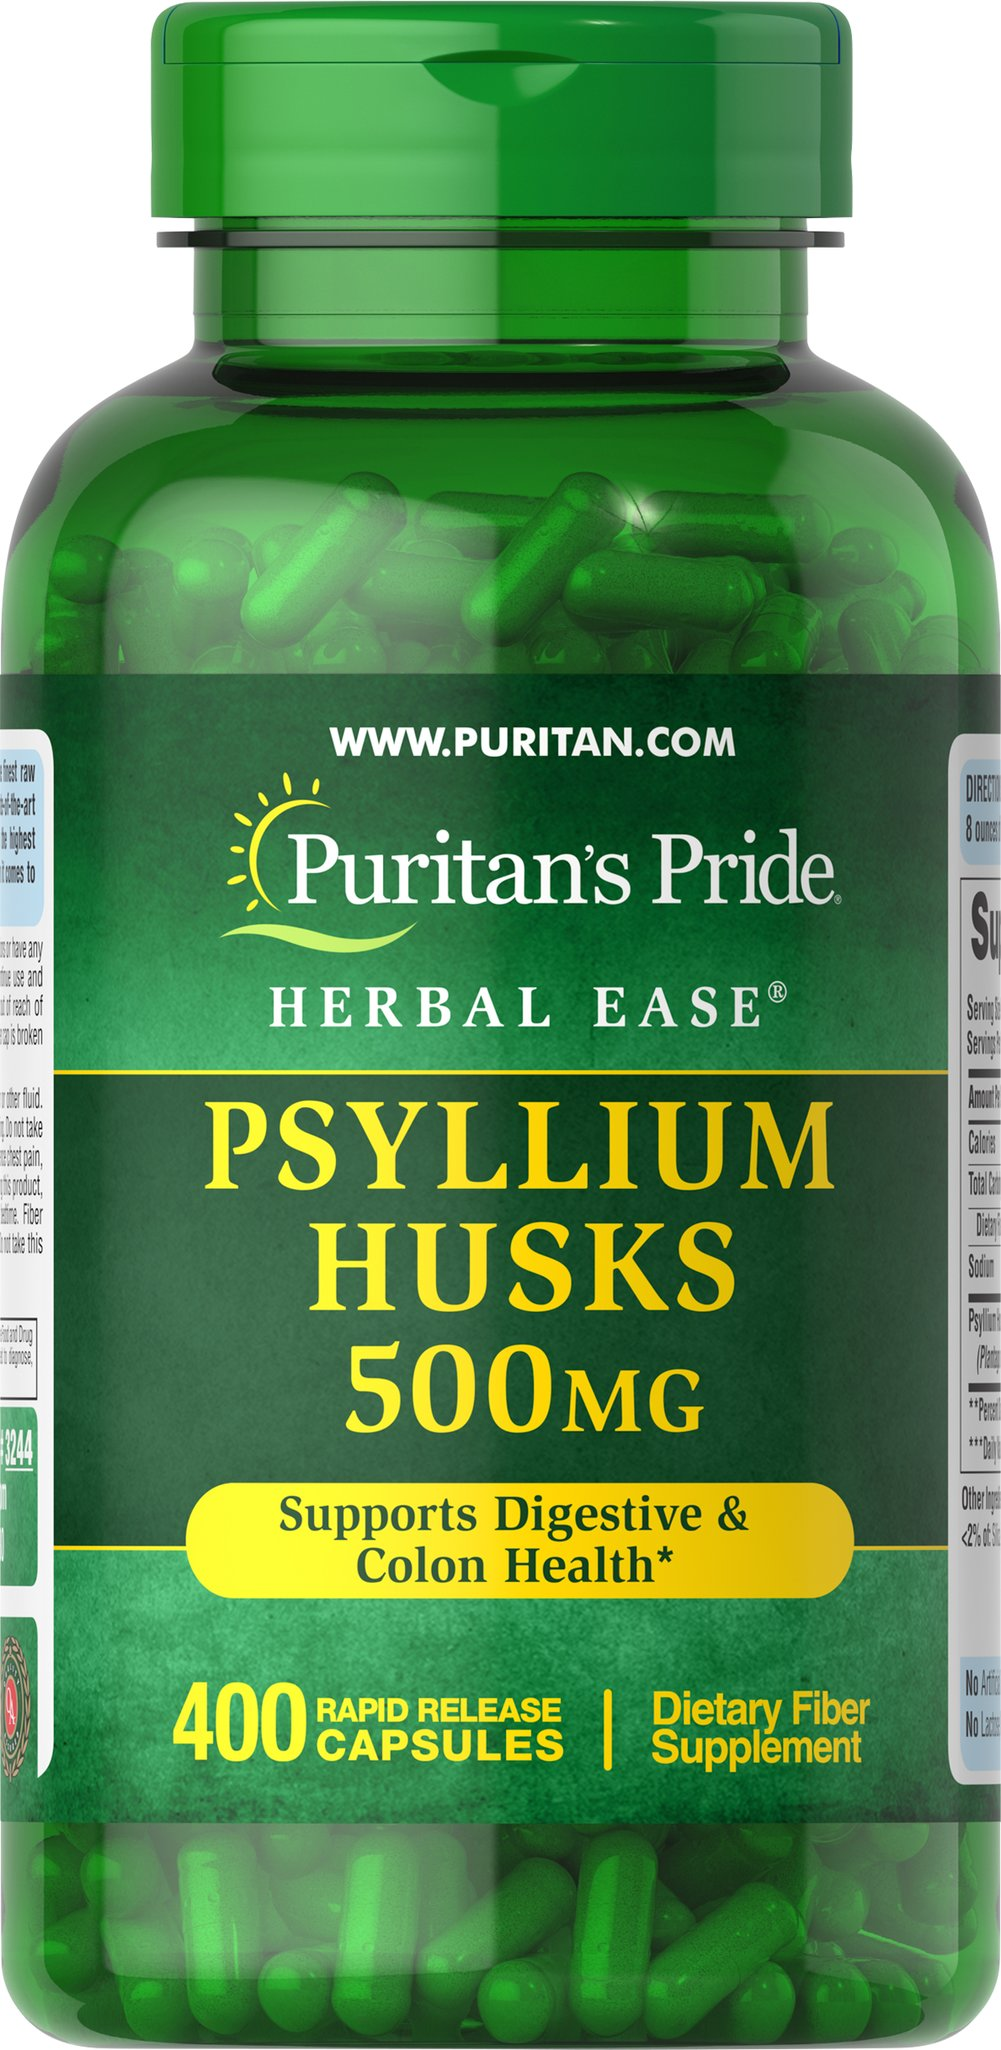 Psyllium Husks 500 mg <p>Psyllium Husks are a source of soluble fiber and a healthy addition to your diet. Our high-quality formula provides 1,000 mg of Psyllium seed husk per serving to support digestive and colon health.**</p>  400 Capsules 500 mg $31.99